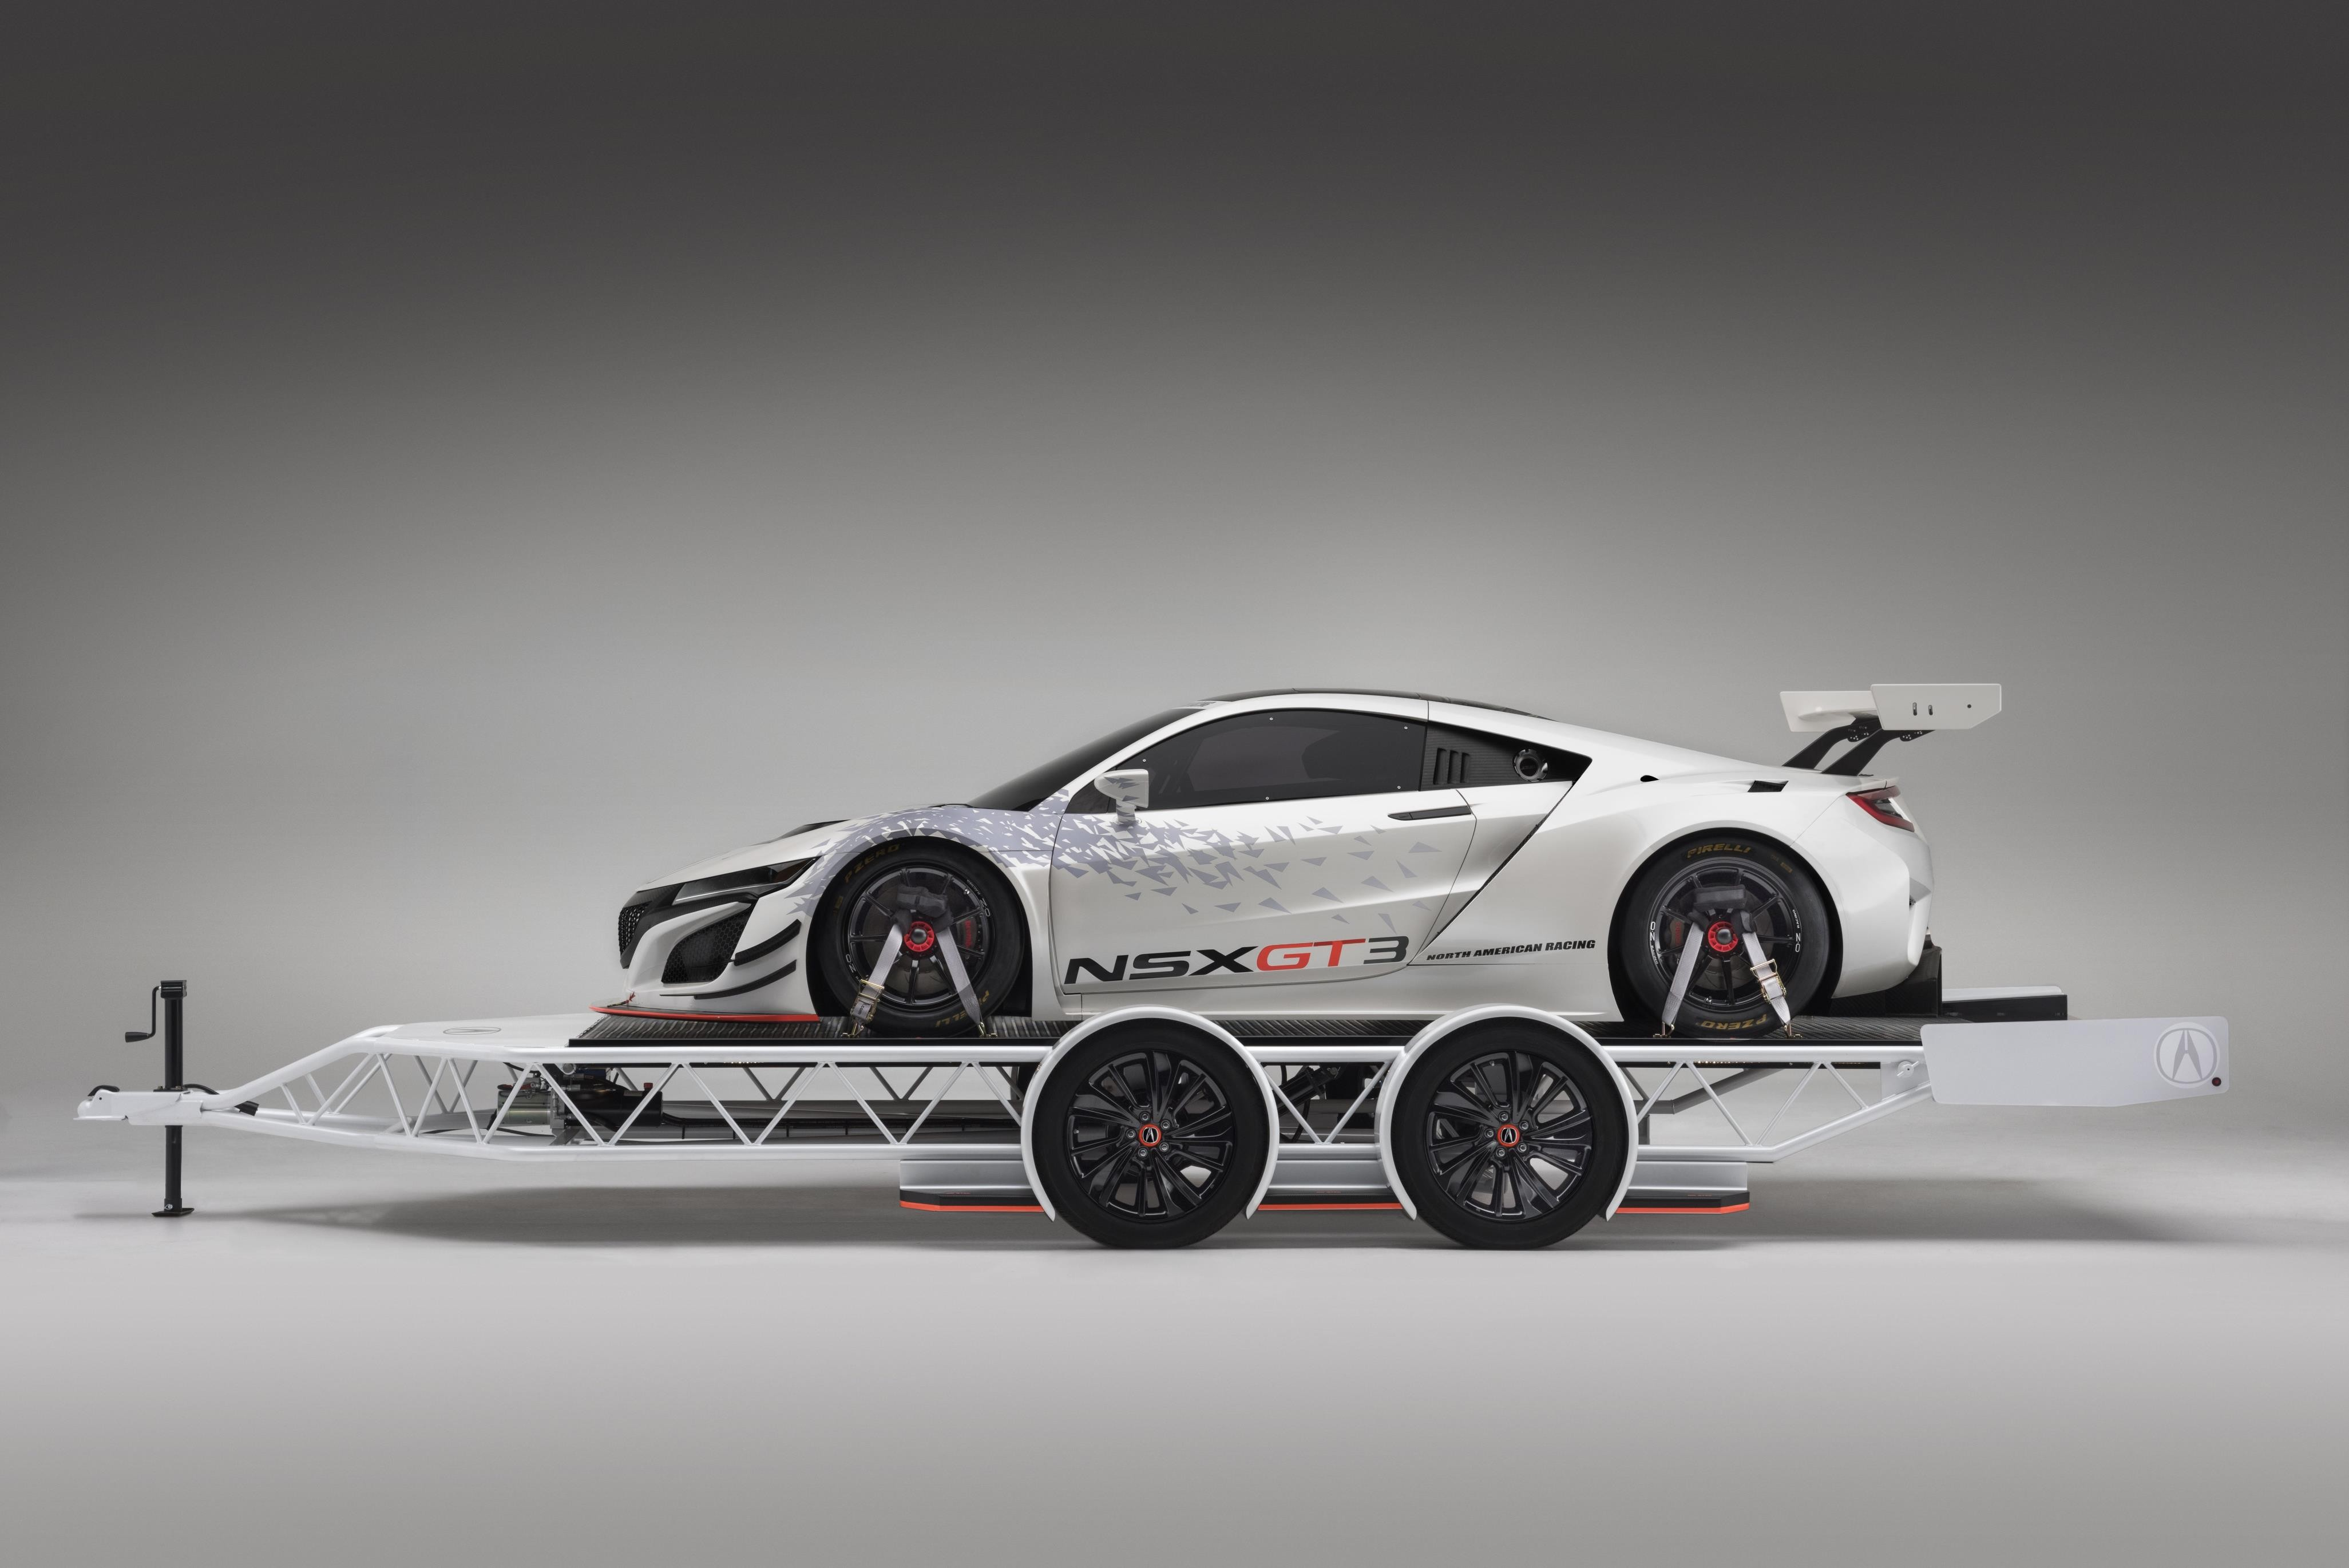 Fiat Spider also Scooped Tony Stark S Million Acura Supercar From The Avengers likewise Custom Acura Mdx Towing Nsx Gt On Special Sema Trailer together with Nissan Juke Priced In The Us From also Hot Rod Acura Nsx X. on 2016 acura nsx